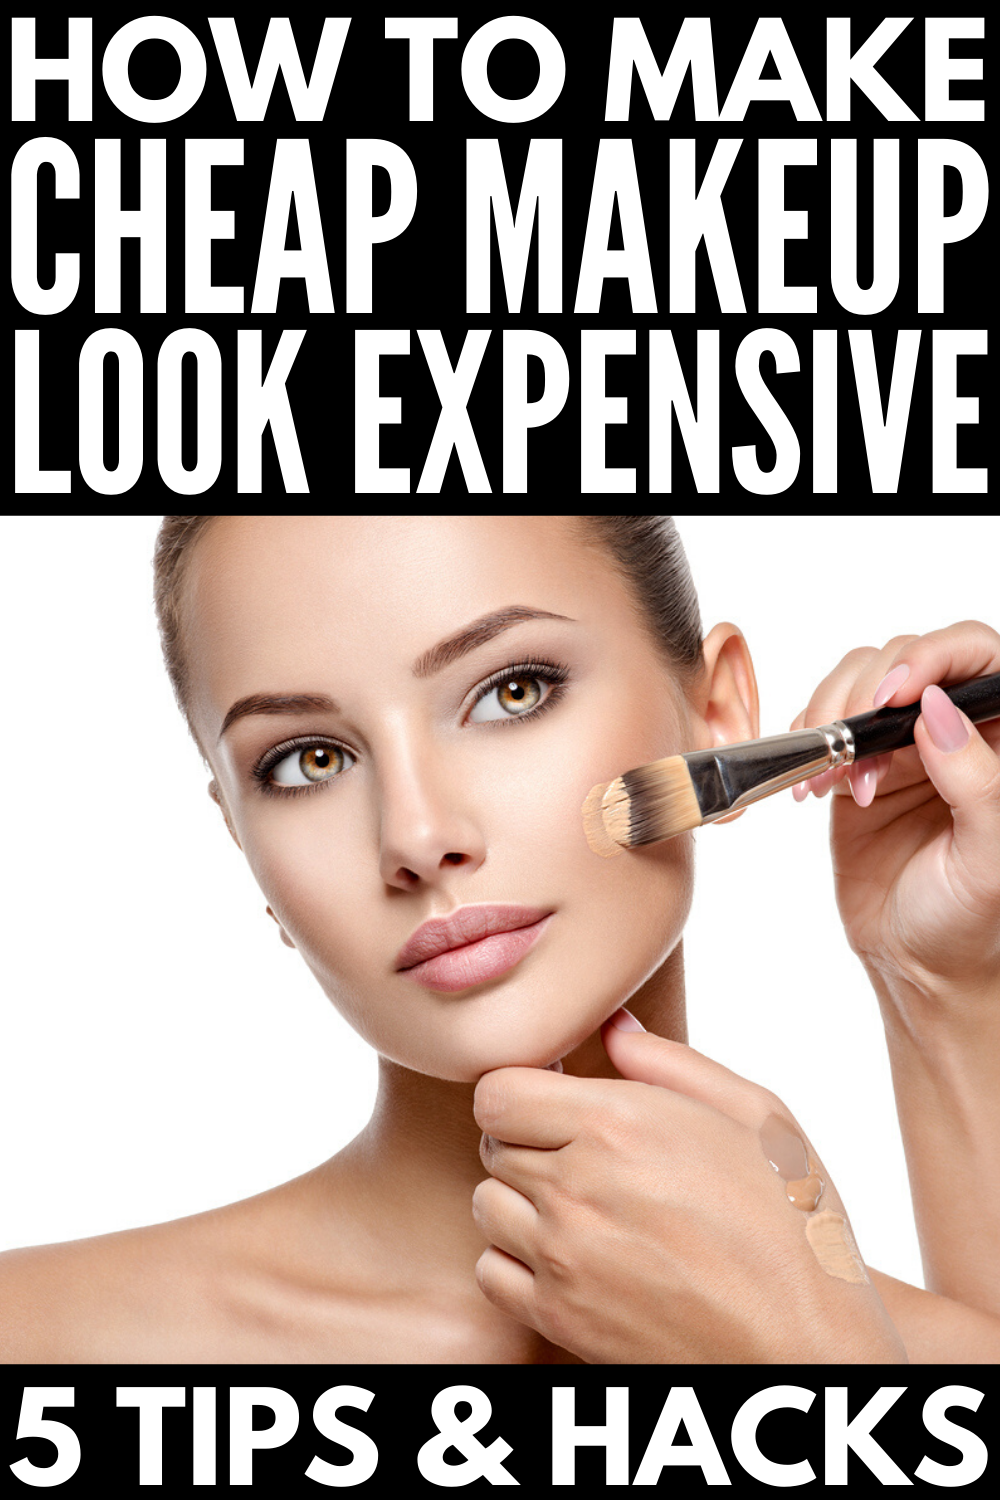 How to Look Expensive on a Budget 18 Tips Every Girl